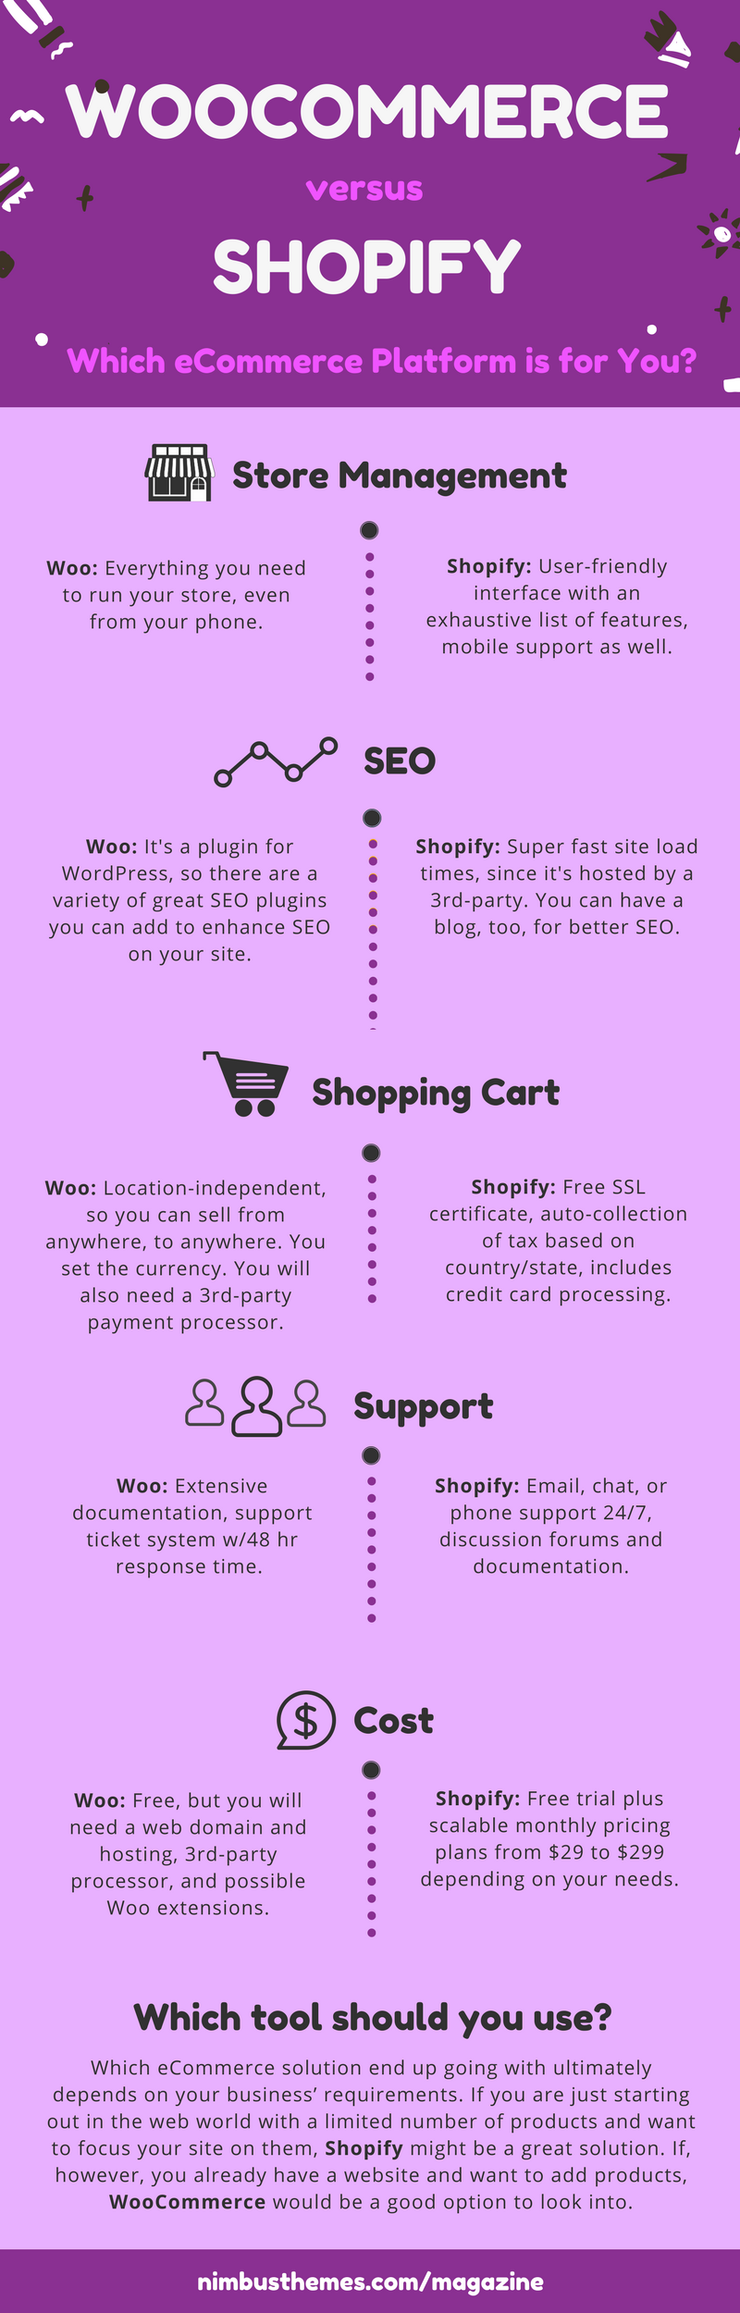 WooCommerce versus Shopify Infographic